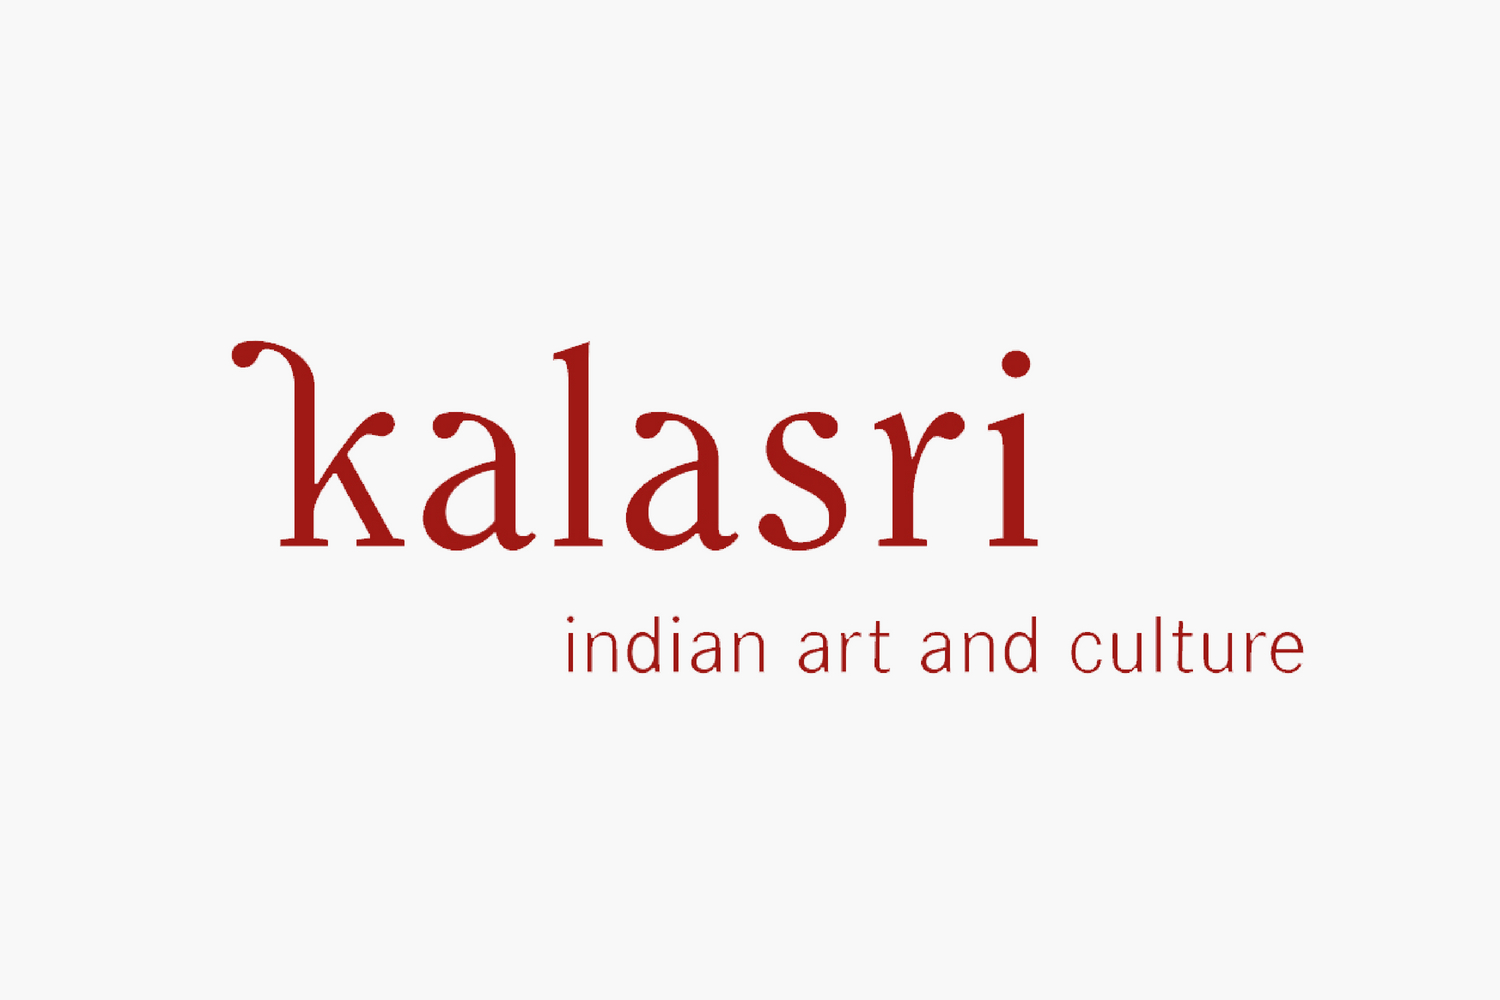 Facebook Marketing - Facebook marketing consultation and support for Kalasri - School of Yoga and Indian Dance (promoting their performances, events and courses).